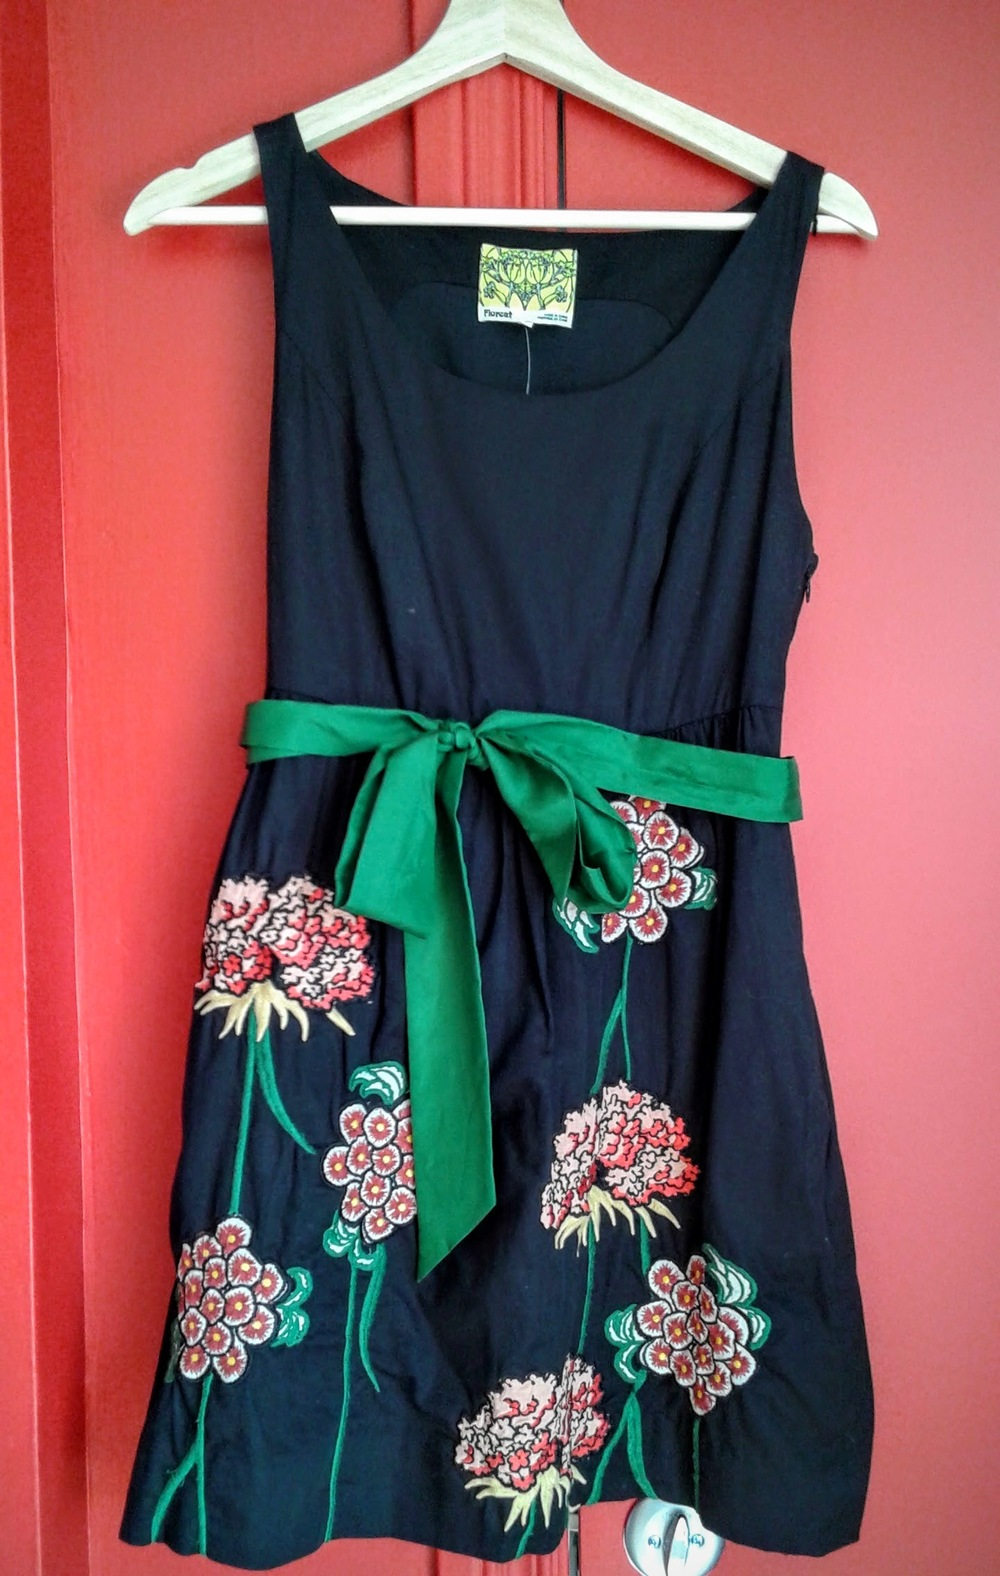 Floreat dress; Size S, $42